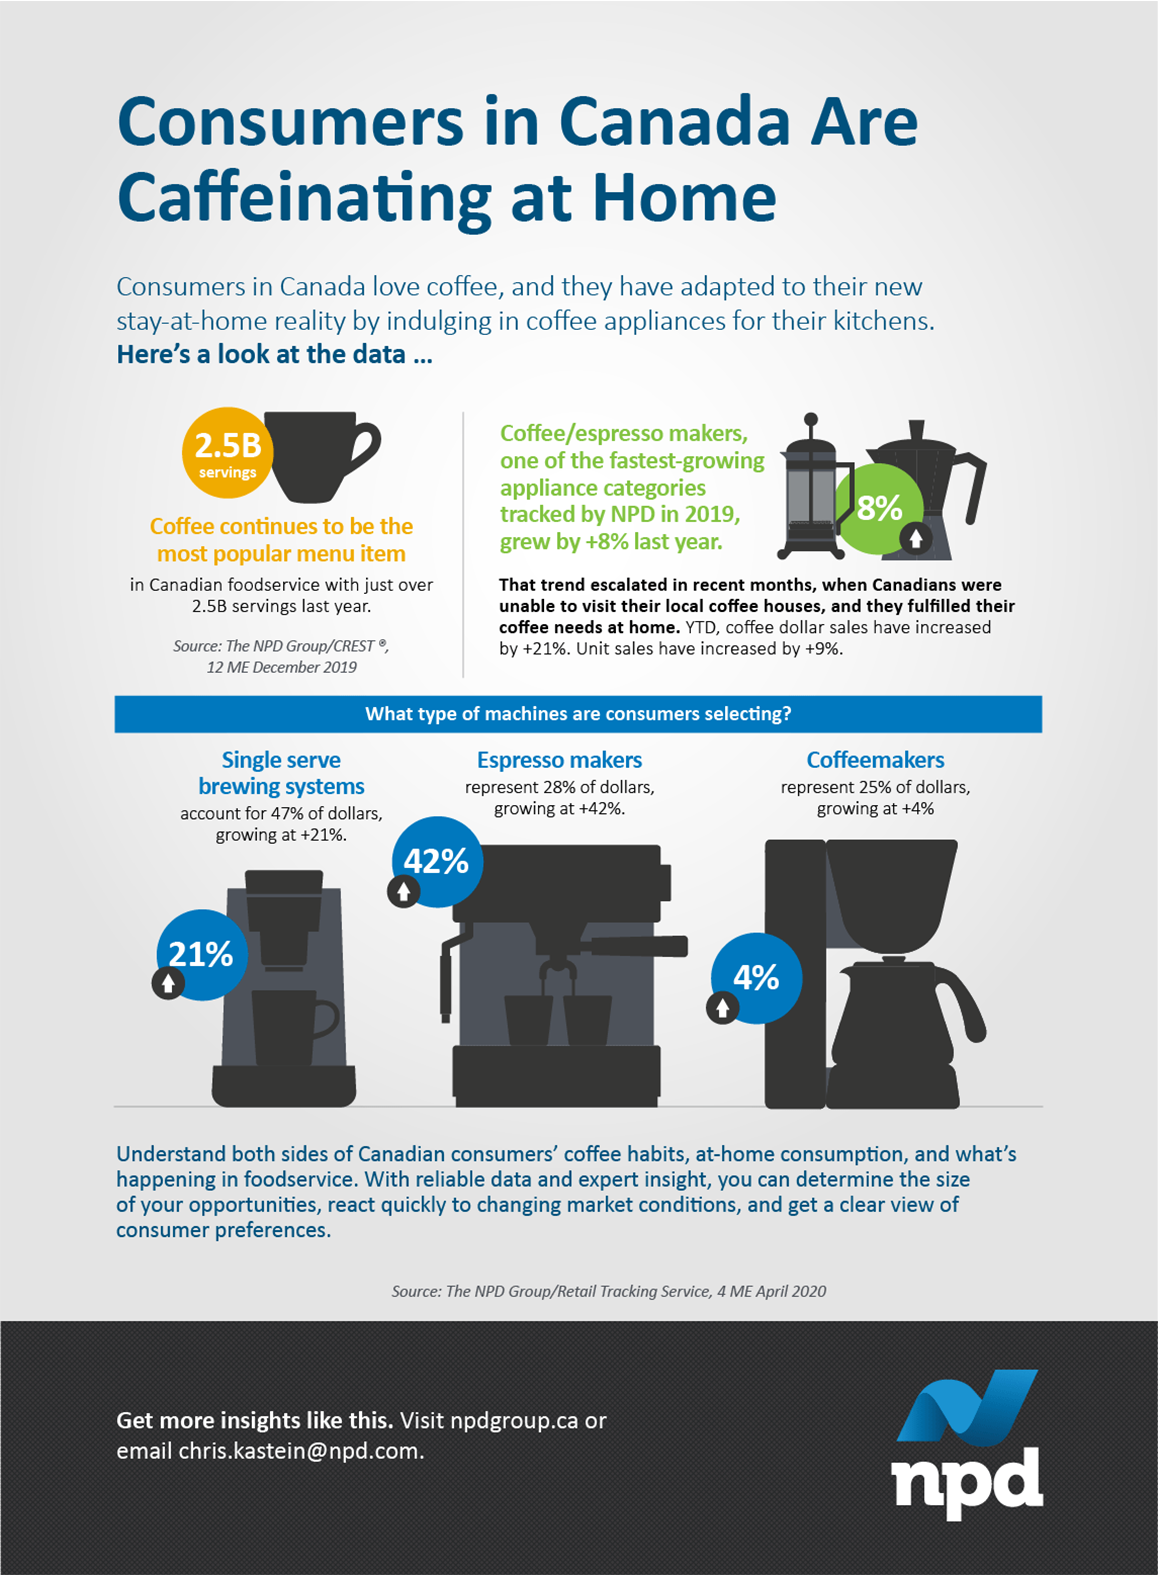 Consumers in Canada love coffee, and they have adapted to their new stay-at-home reality by indulging in coffee appliances for their kitchens.